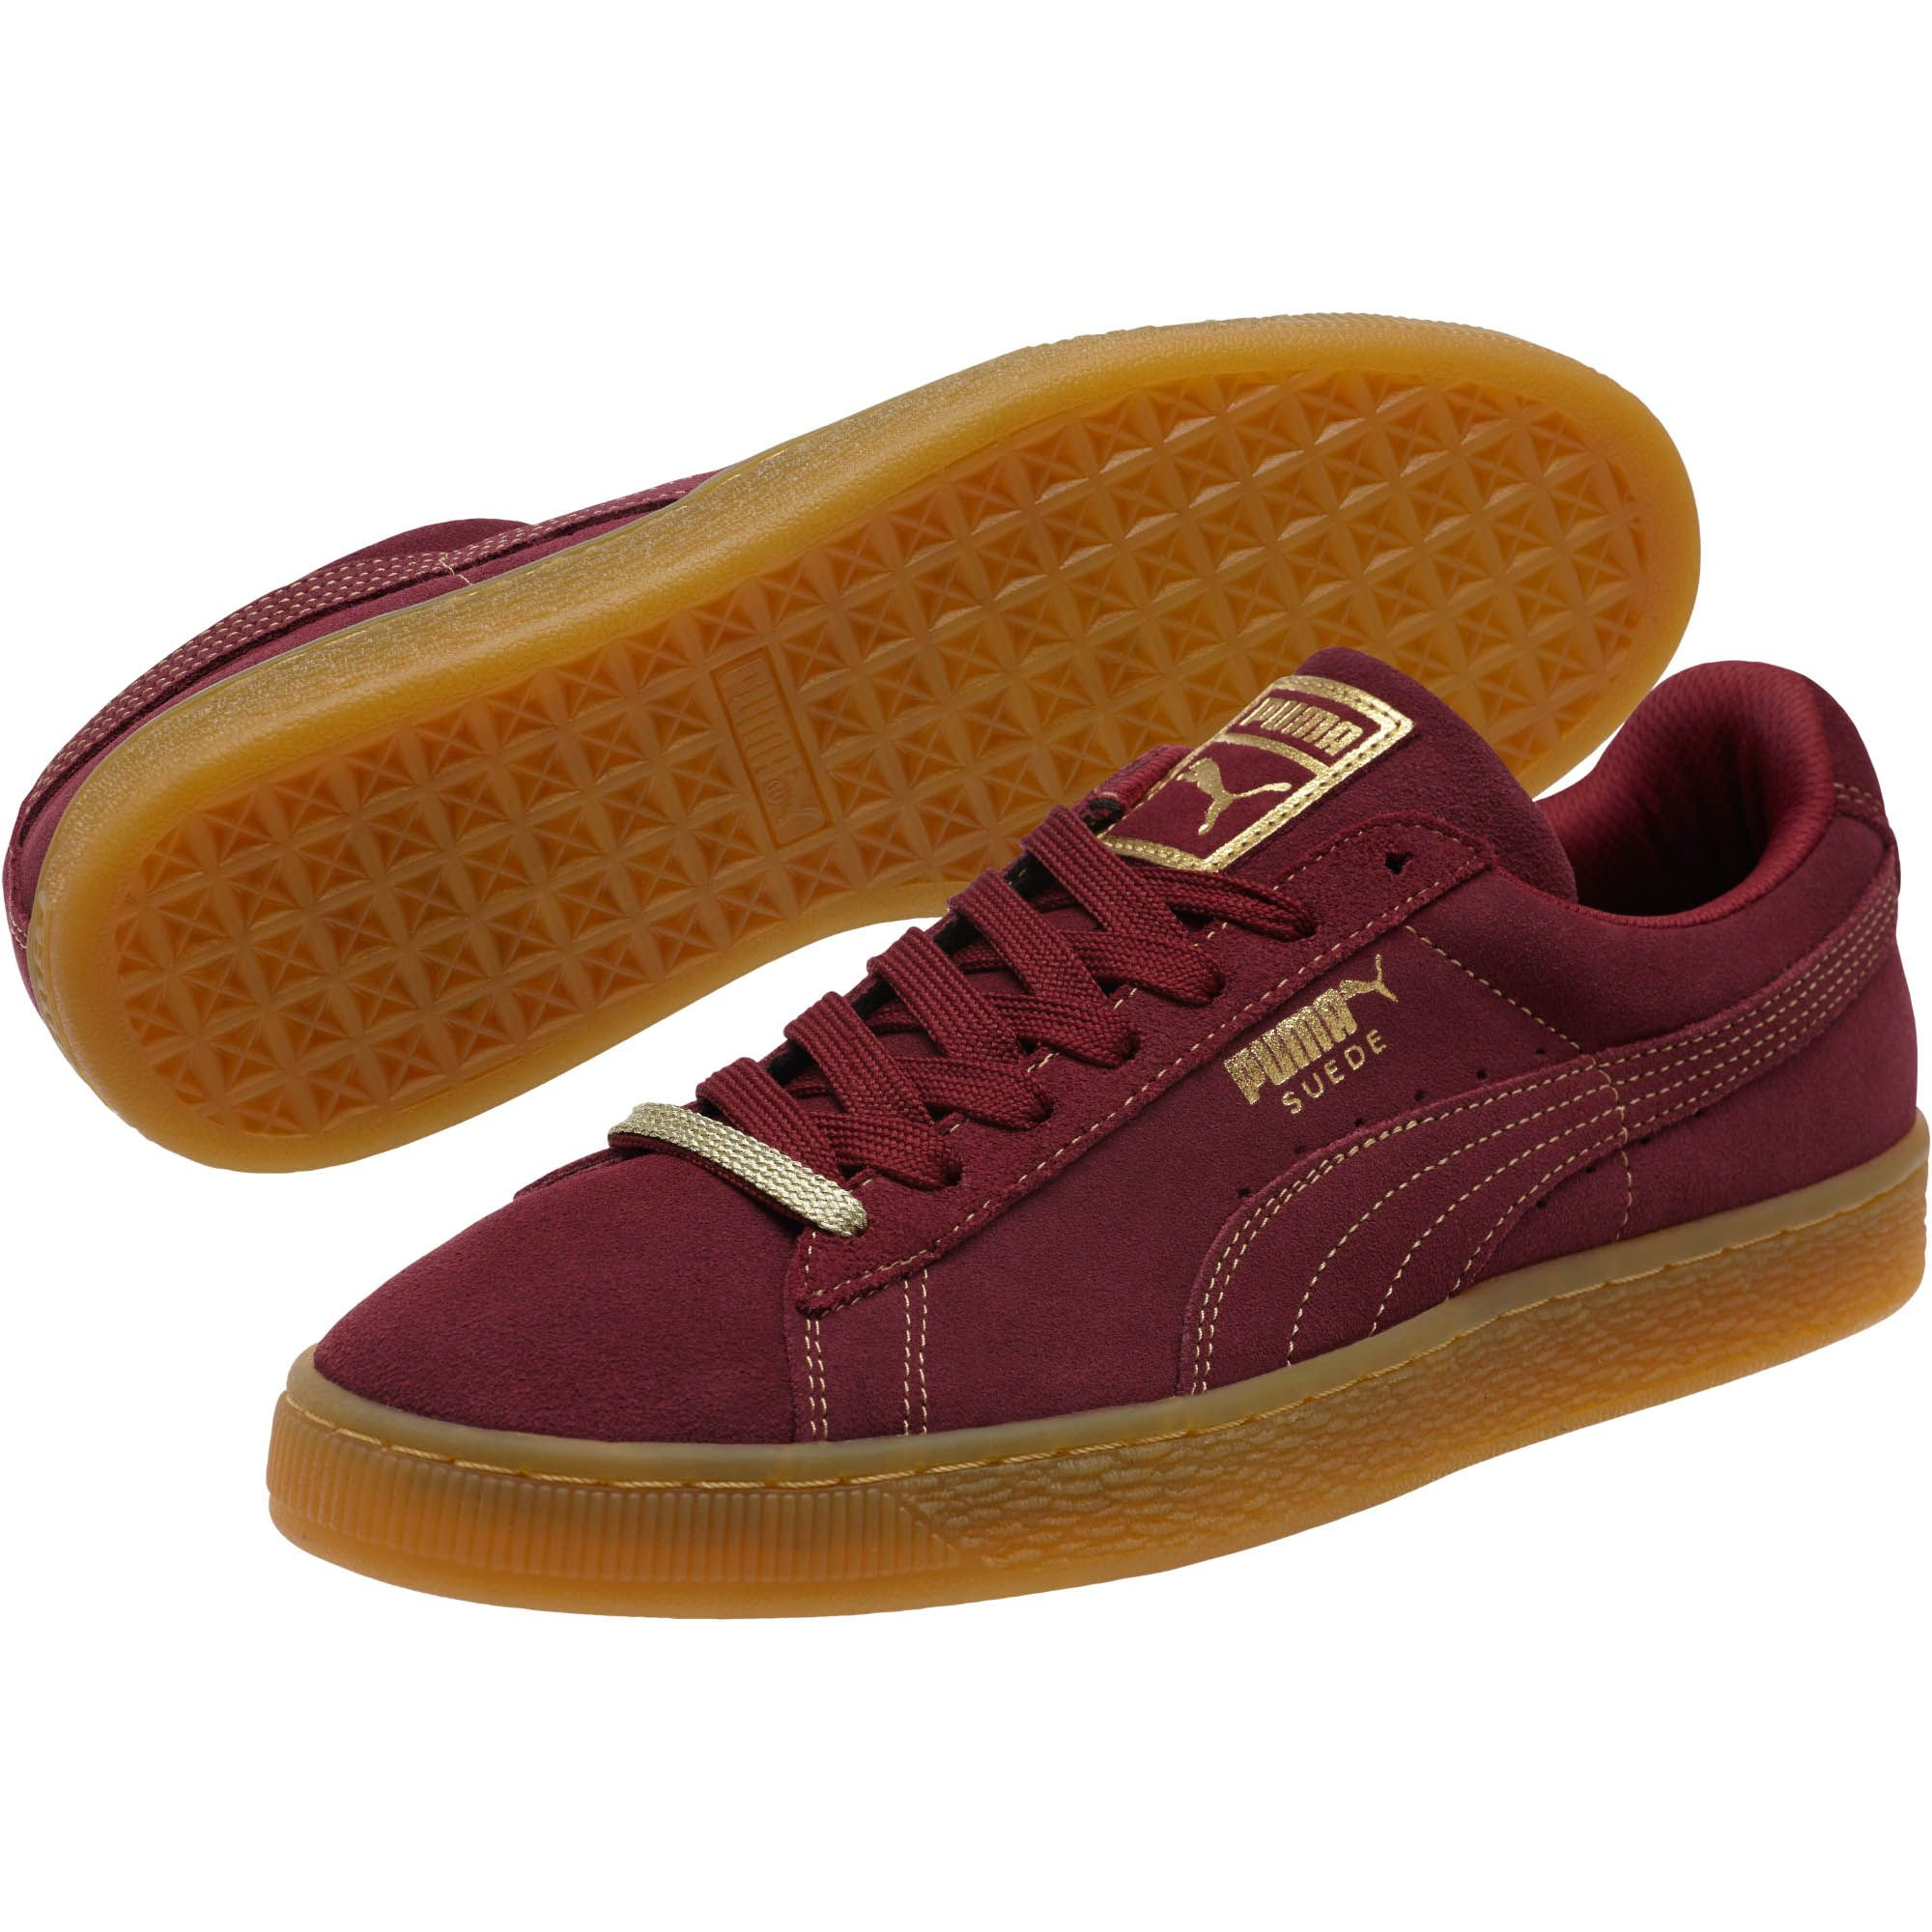 55dc7a915ccc Lyst - Puma Suede Classic Gold Foil Mens Sneakers in Red for ...